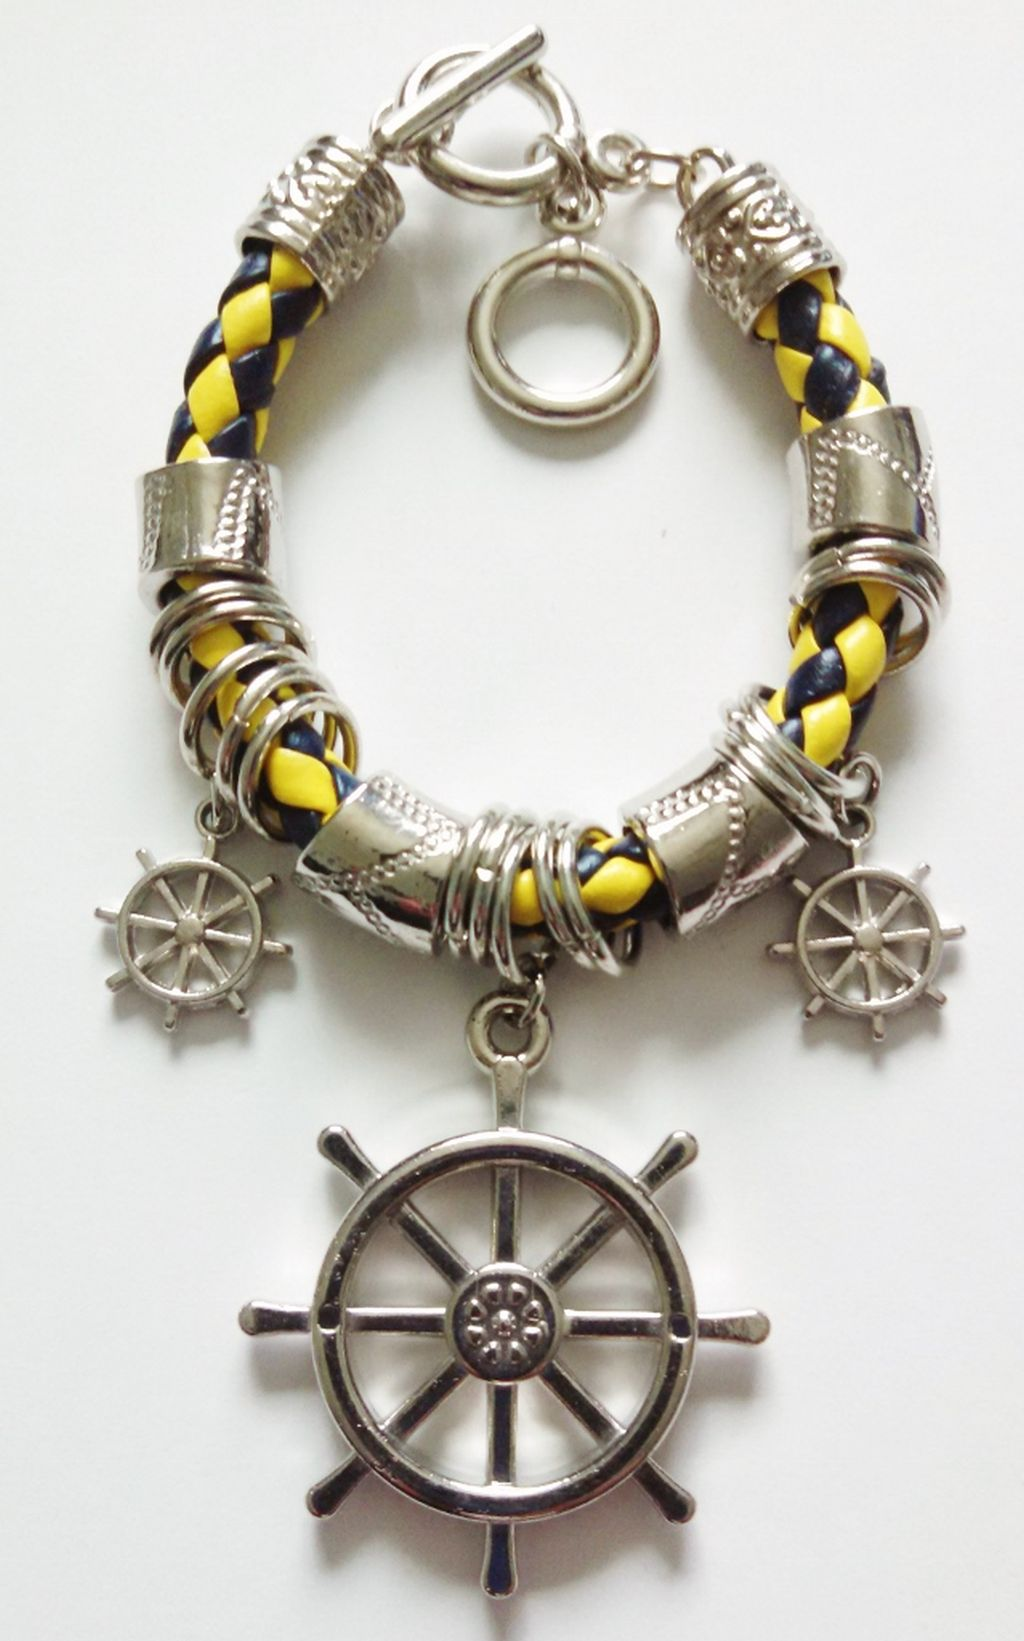 Silver Naval Ship Wheel Sailing Charm Bracelet, Nautical Jewelry Blue/Yellow